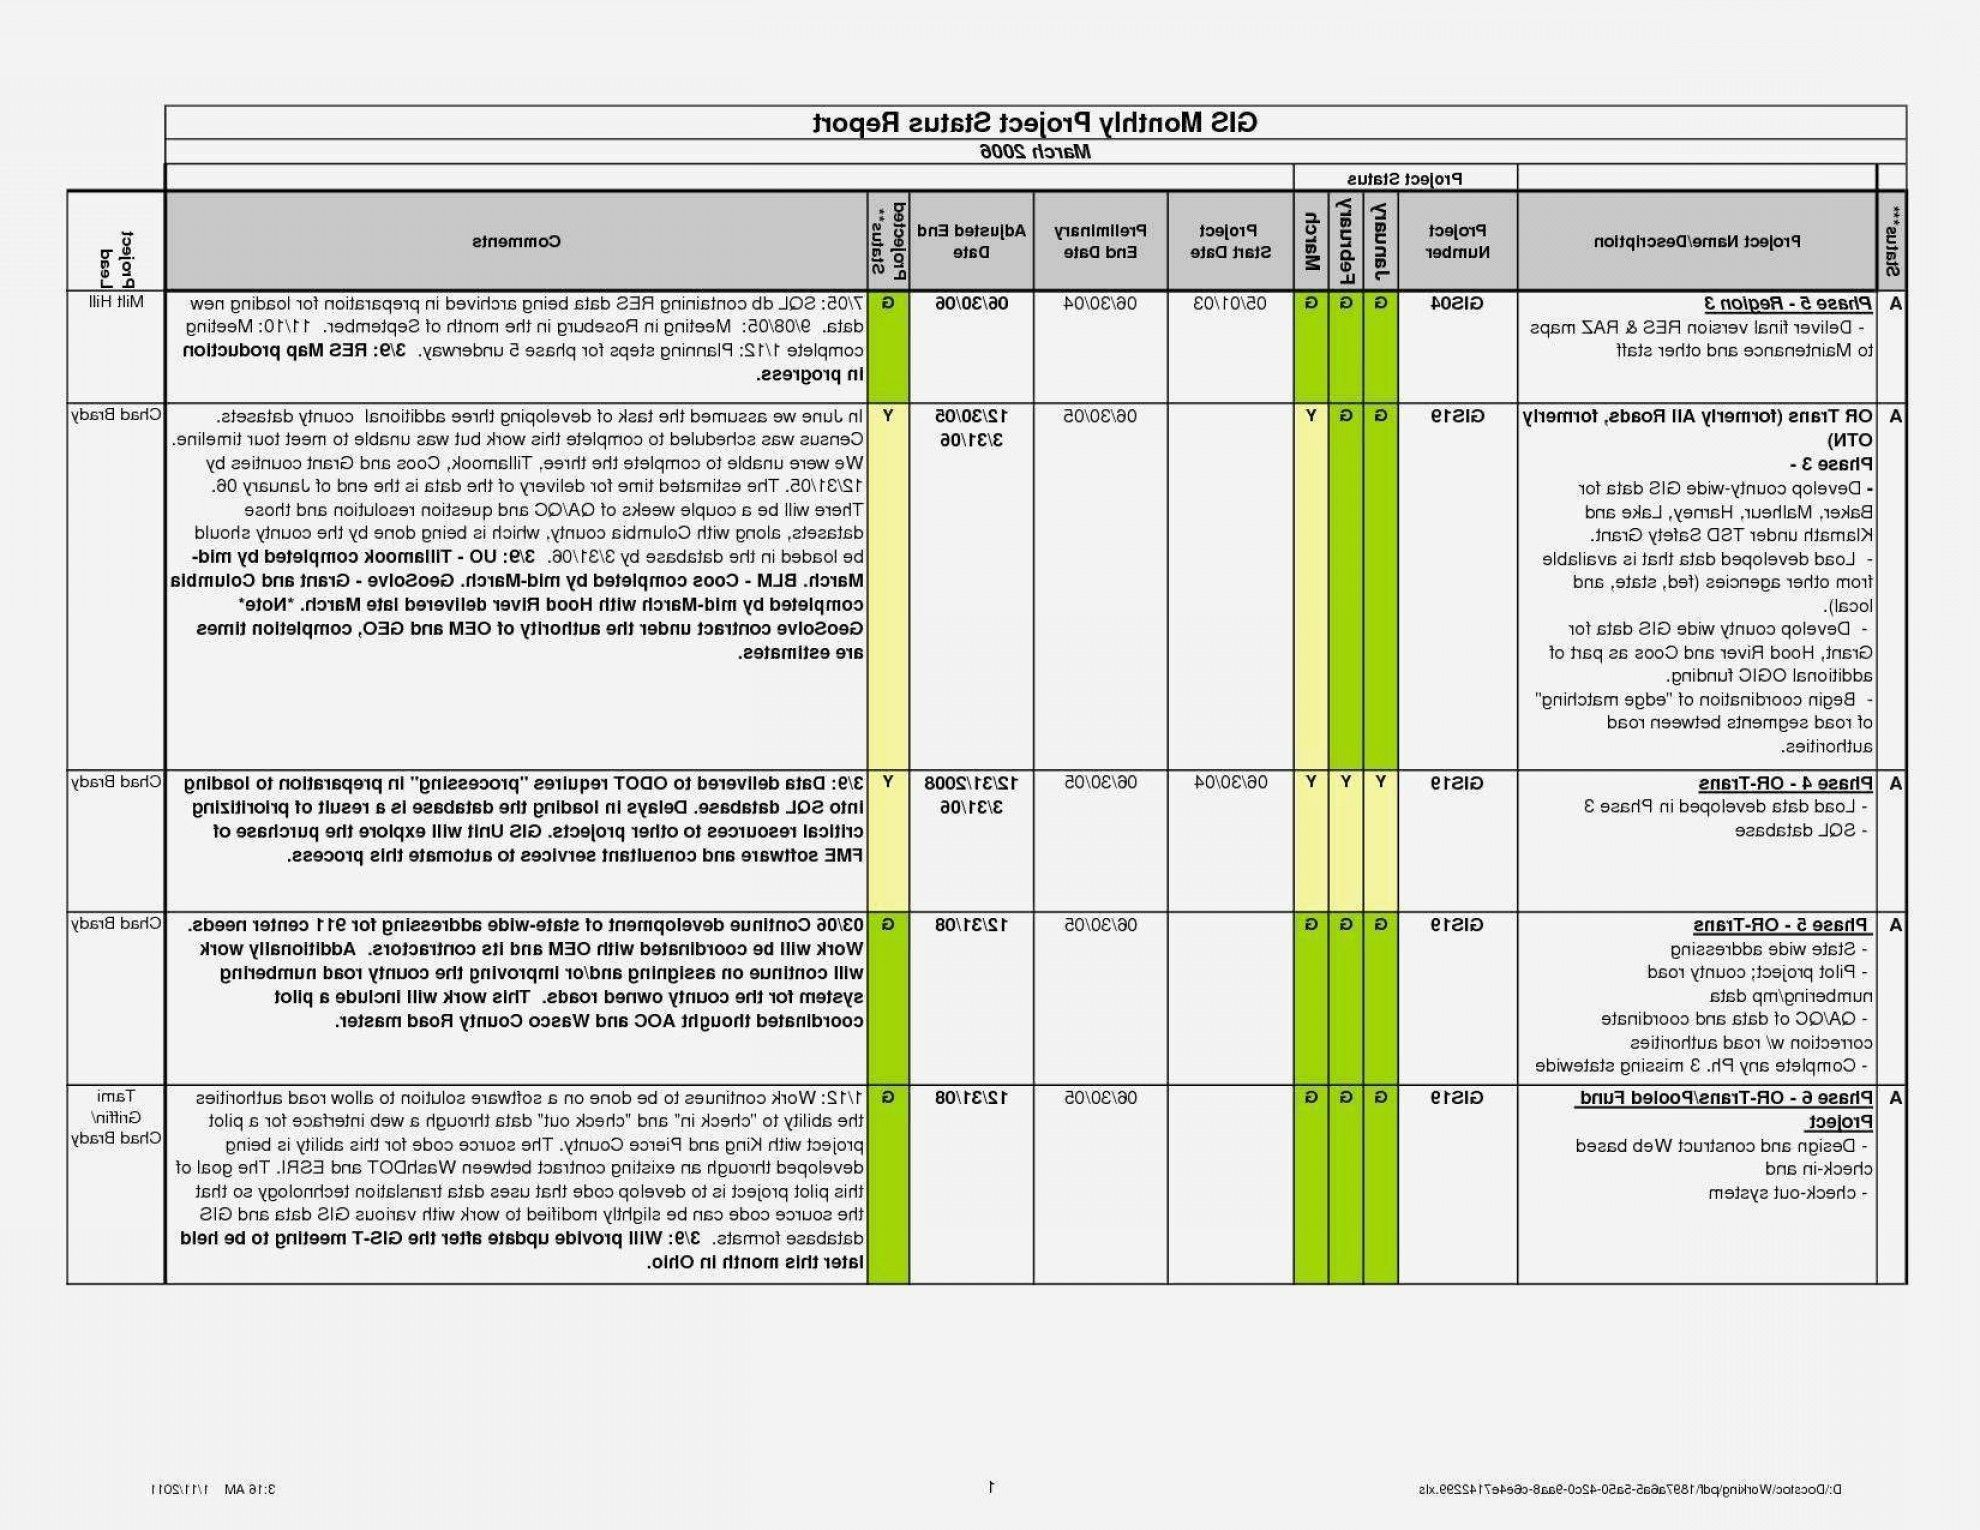 003 Impressive Project Management Report Format Photo  Template Word Free Example PdfFull